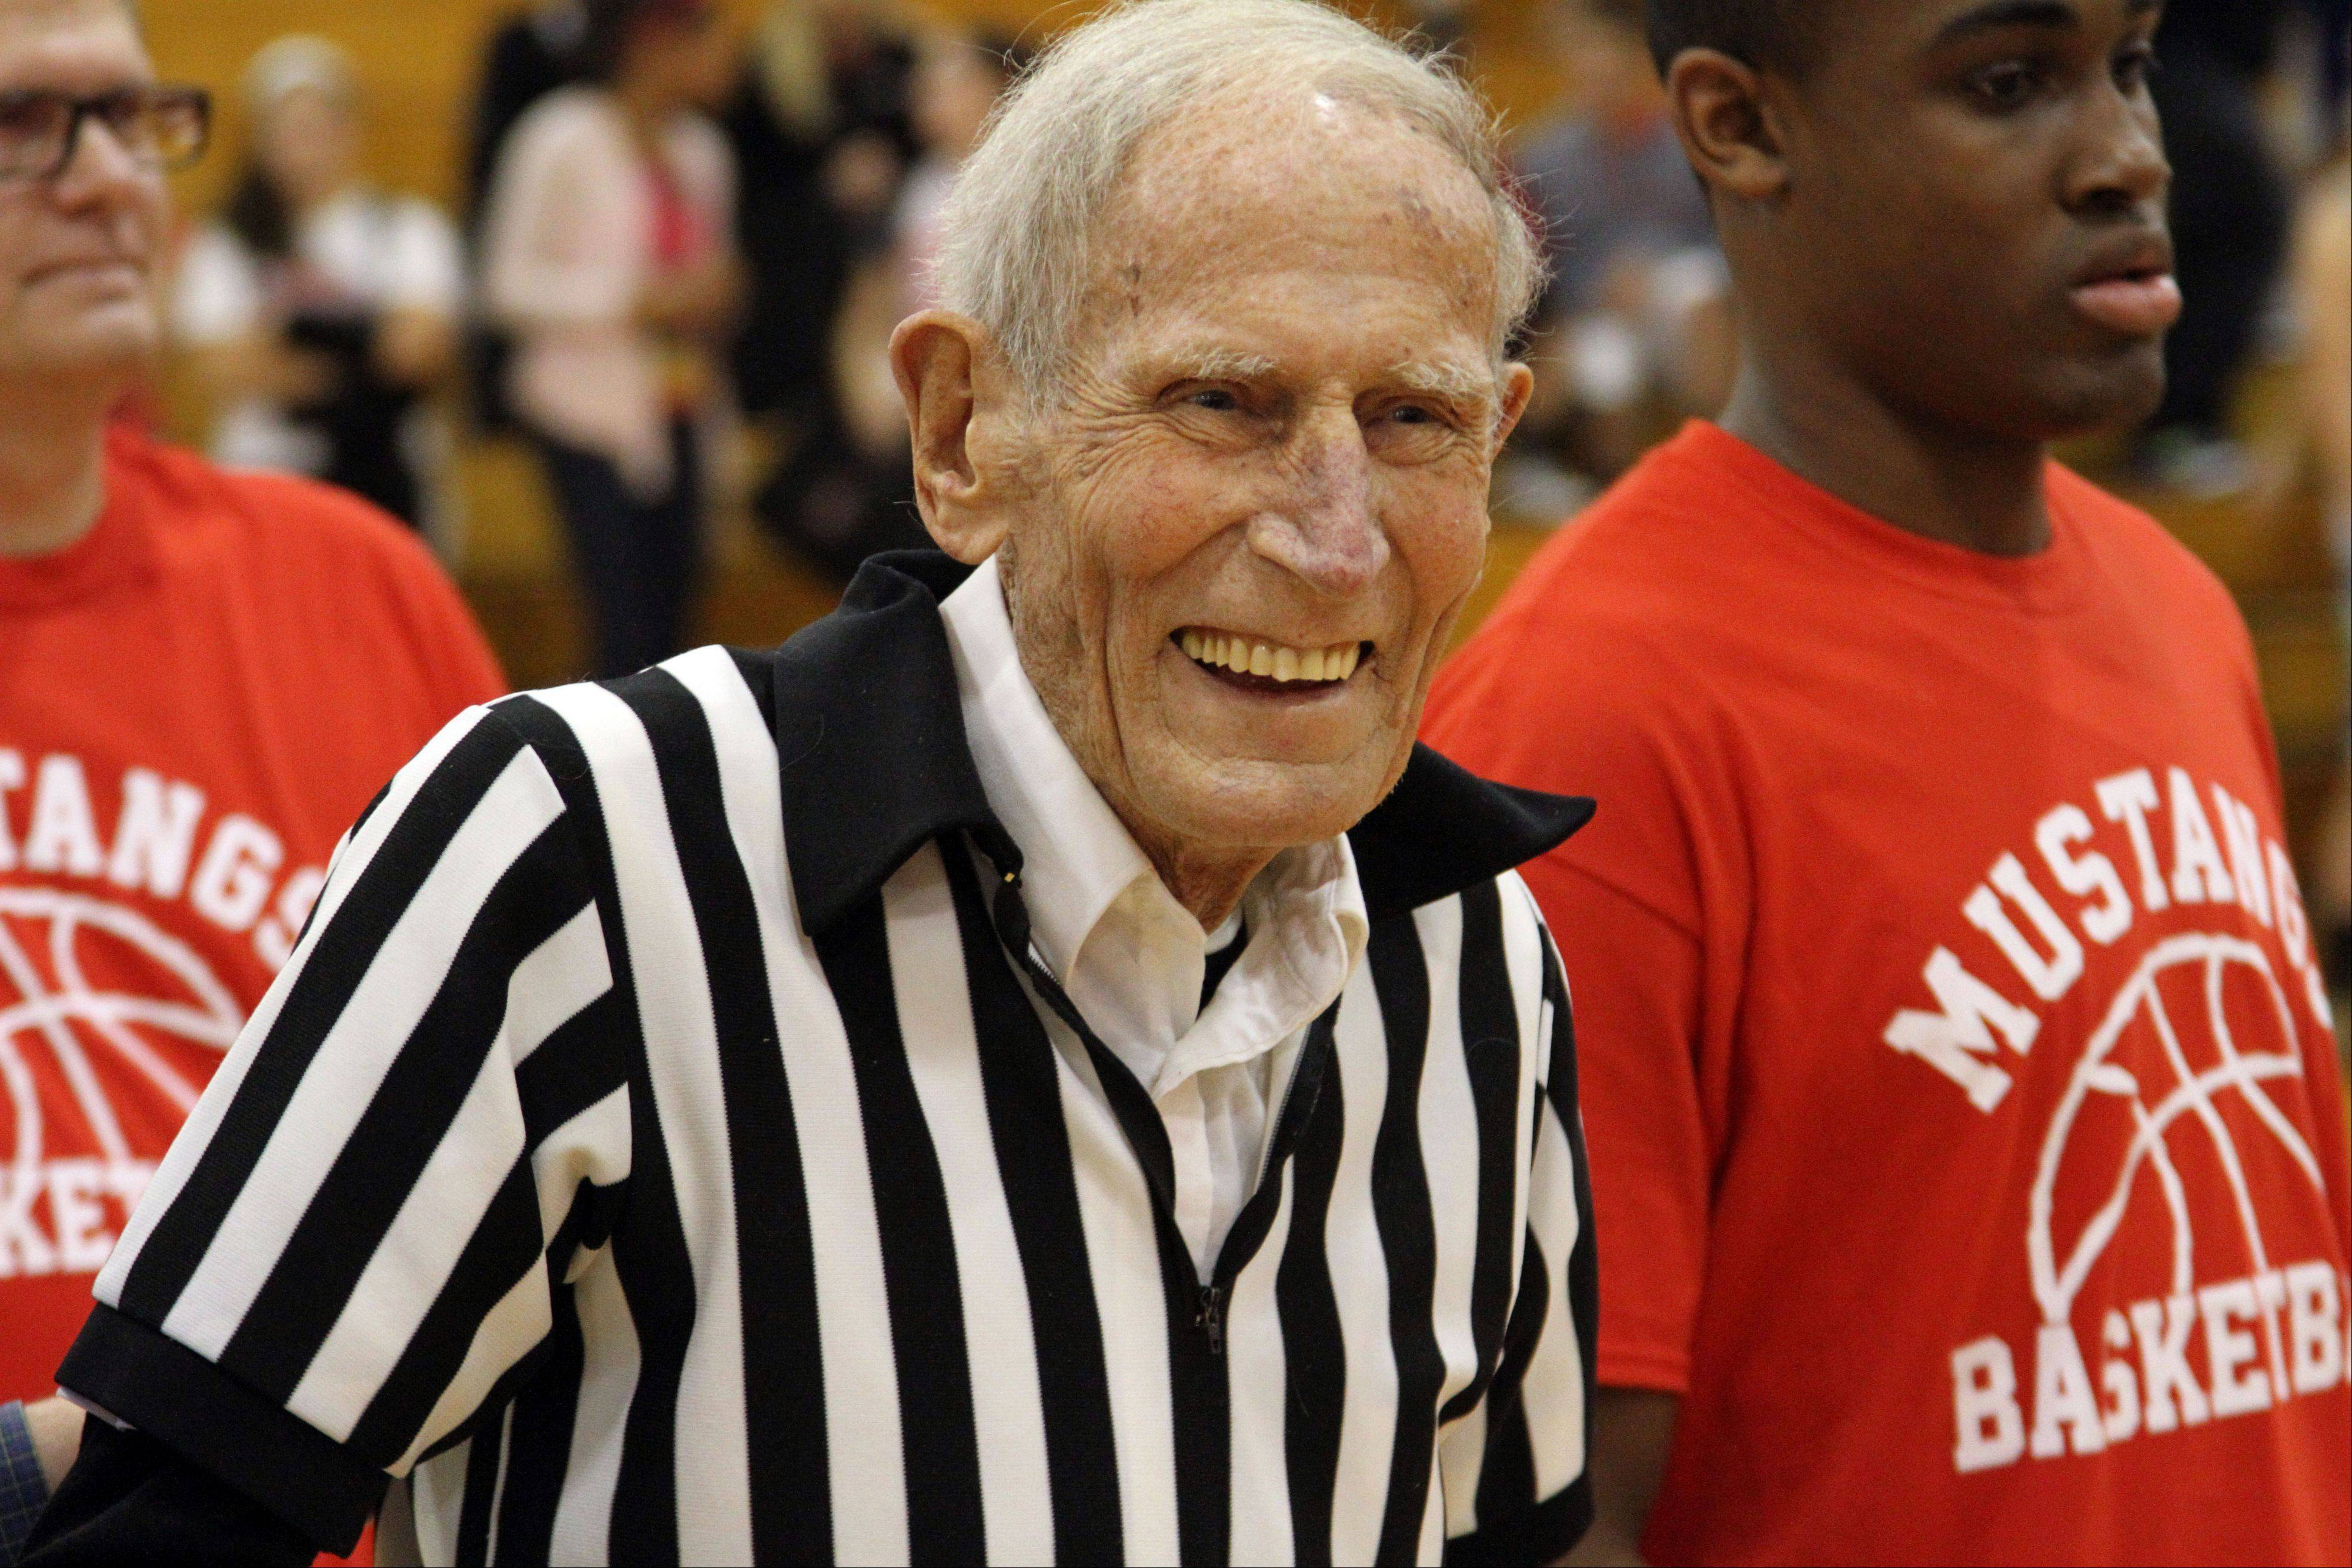 Mundelein High School basketball scorekeeper Jim Ackley is all smiles after being honored before Tuesday night's varsity boys basketball game for 50 years of service at Mundelein High School. .